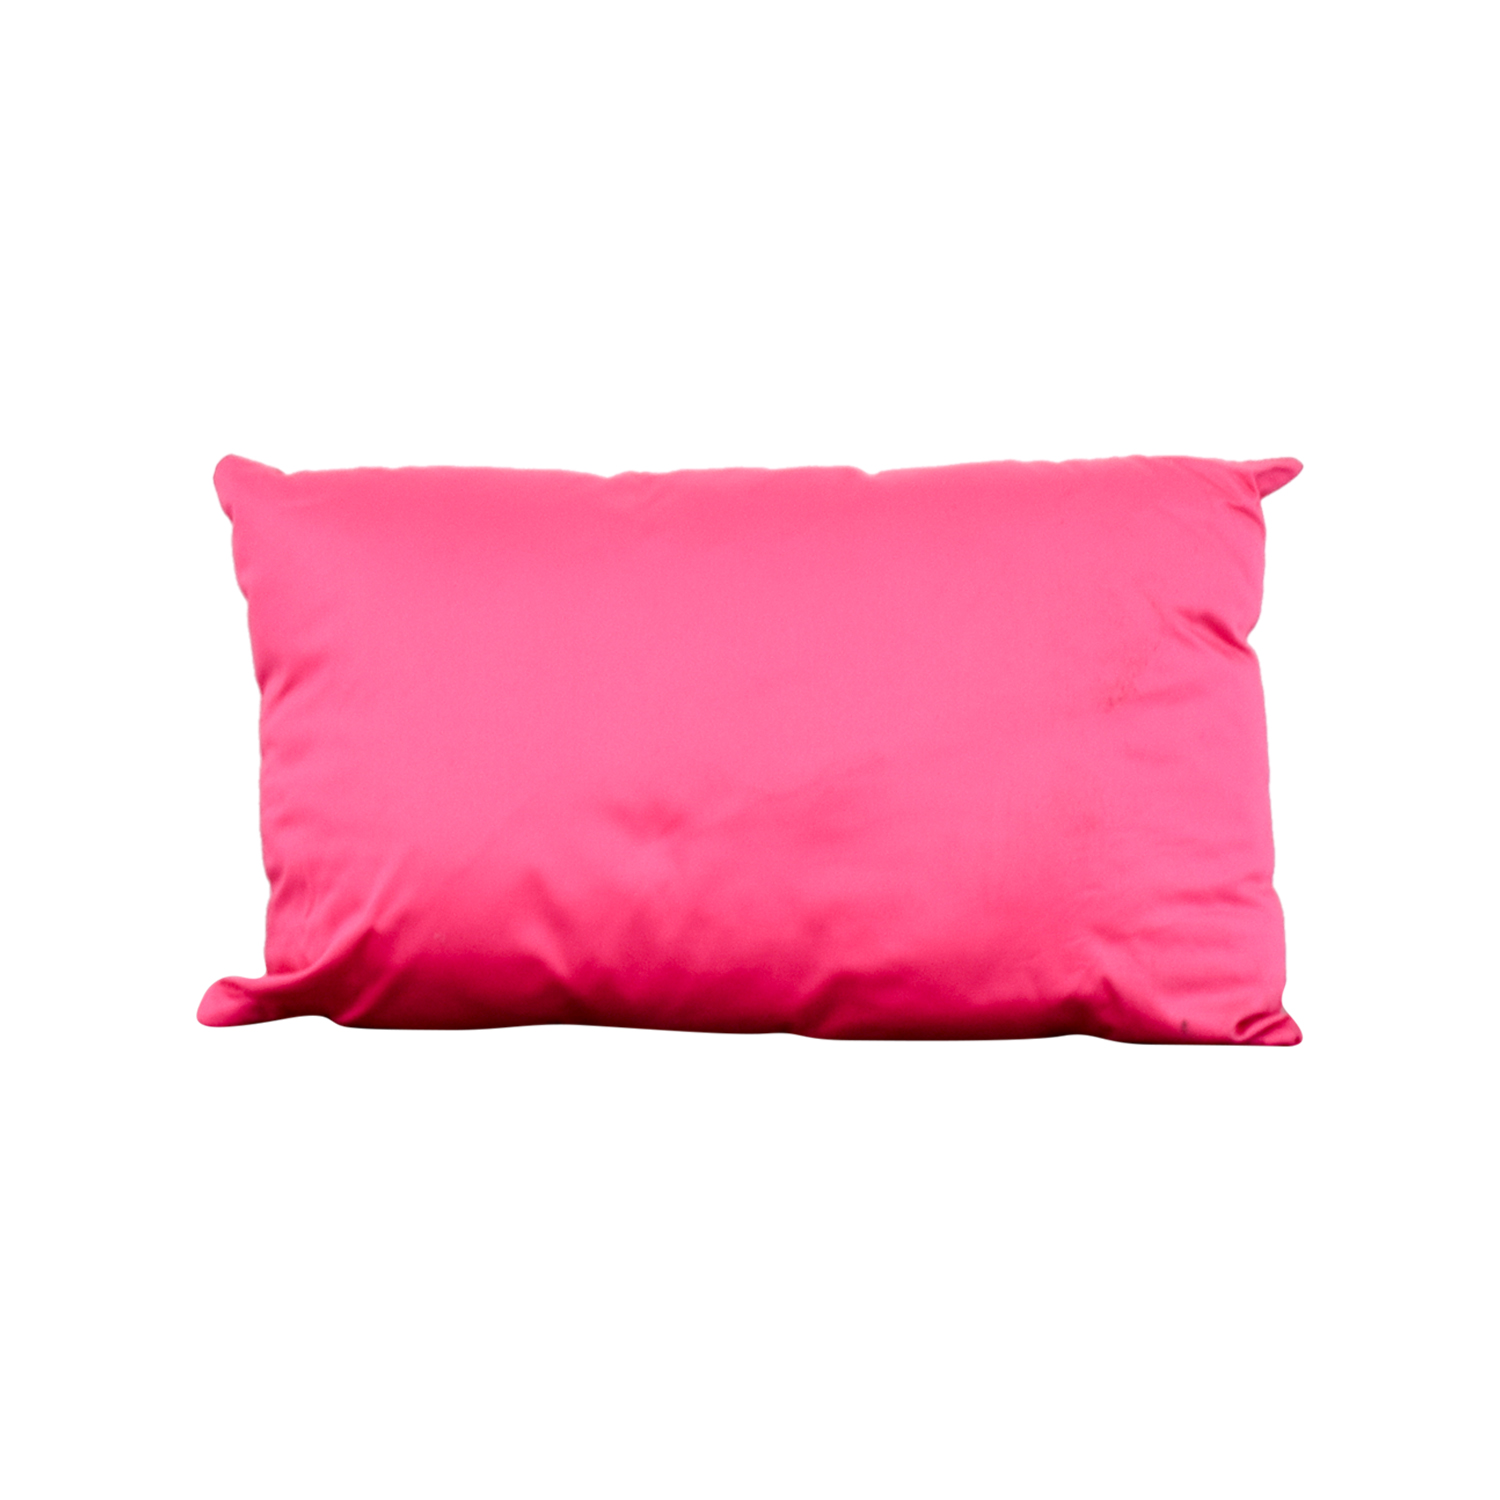 buy Society Social Society Social Hot Pink Pillow online